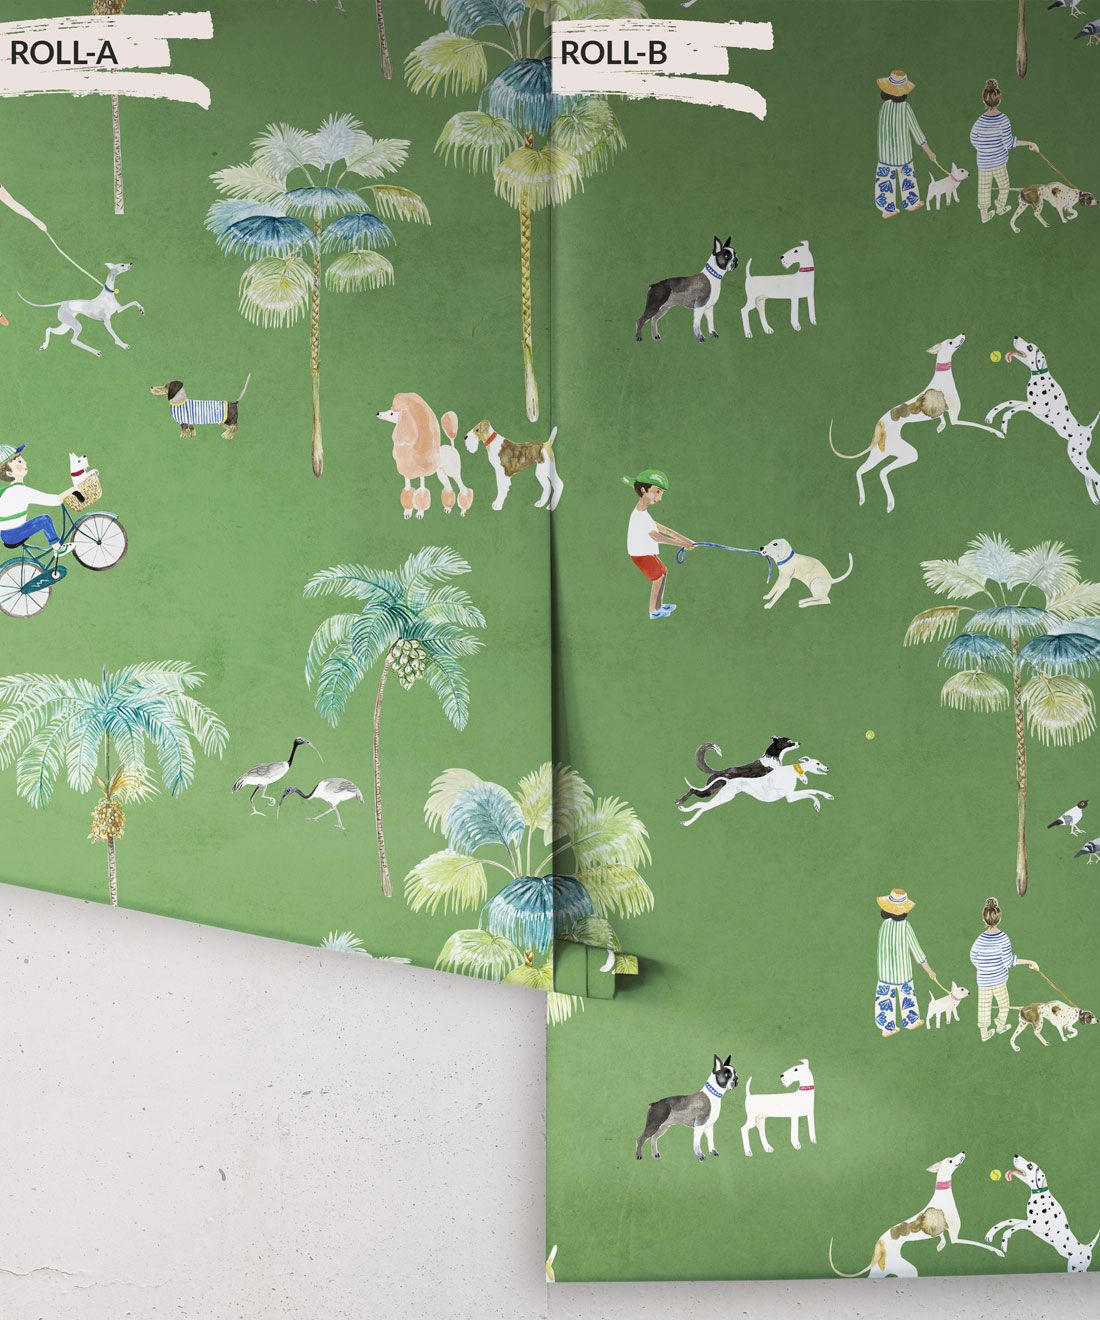 At The Dog Park Wallpaper • Kids Wallpaper • Green • Rolls